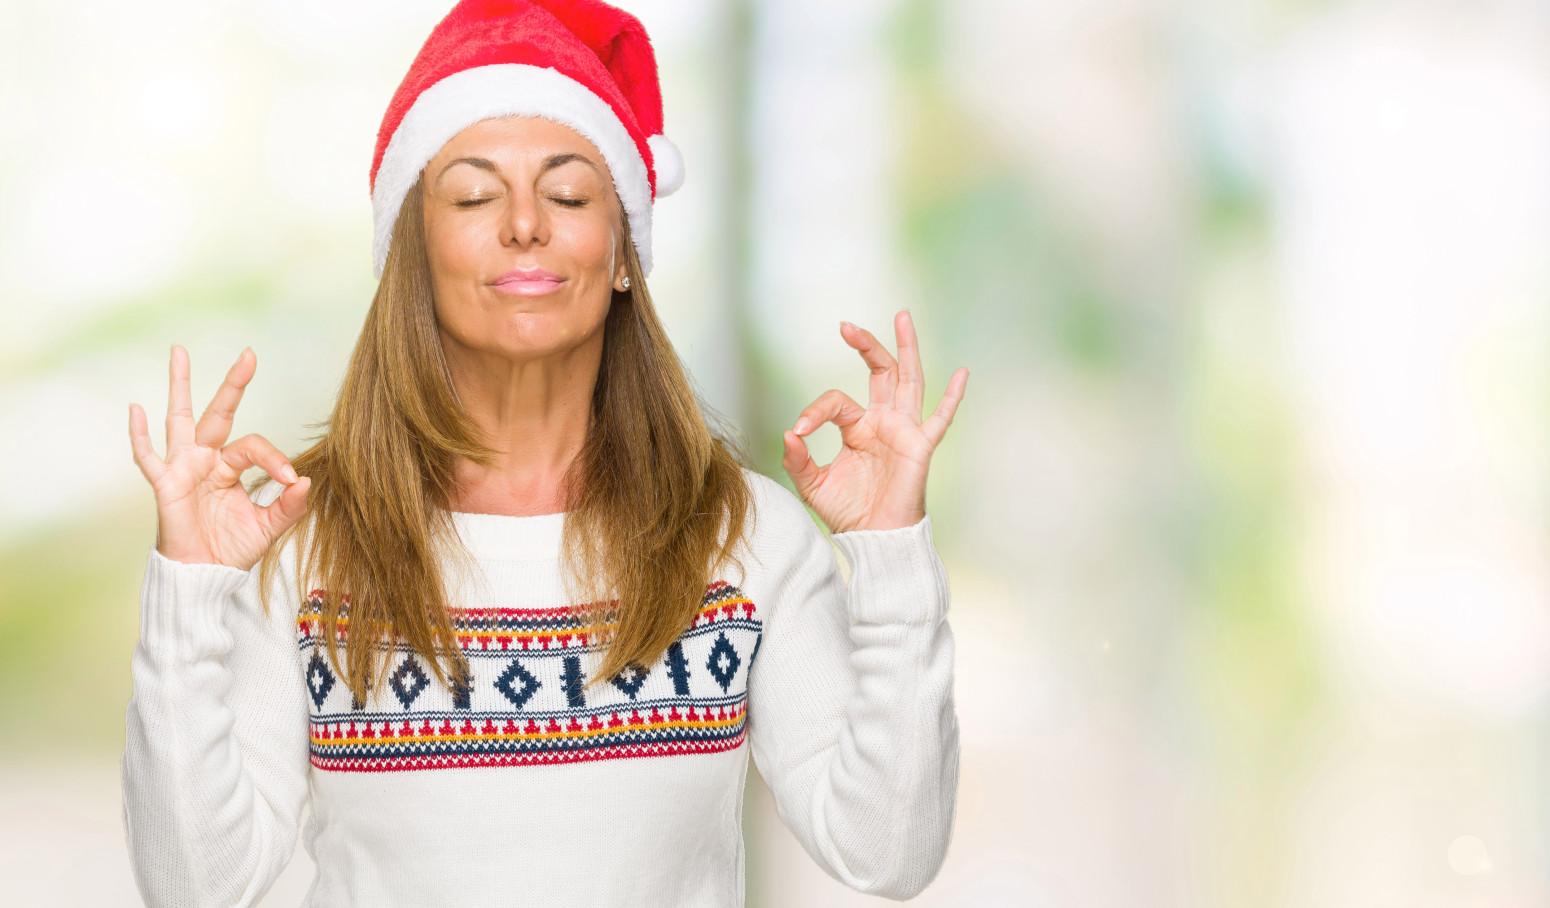 5 Tips to Overcome Holiday Stress - Scott Livengood